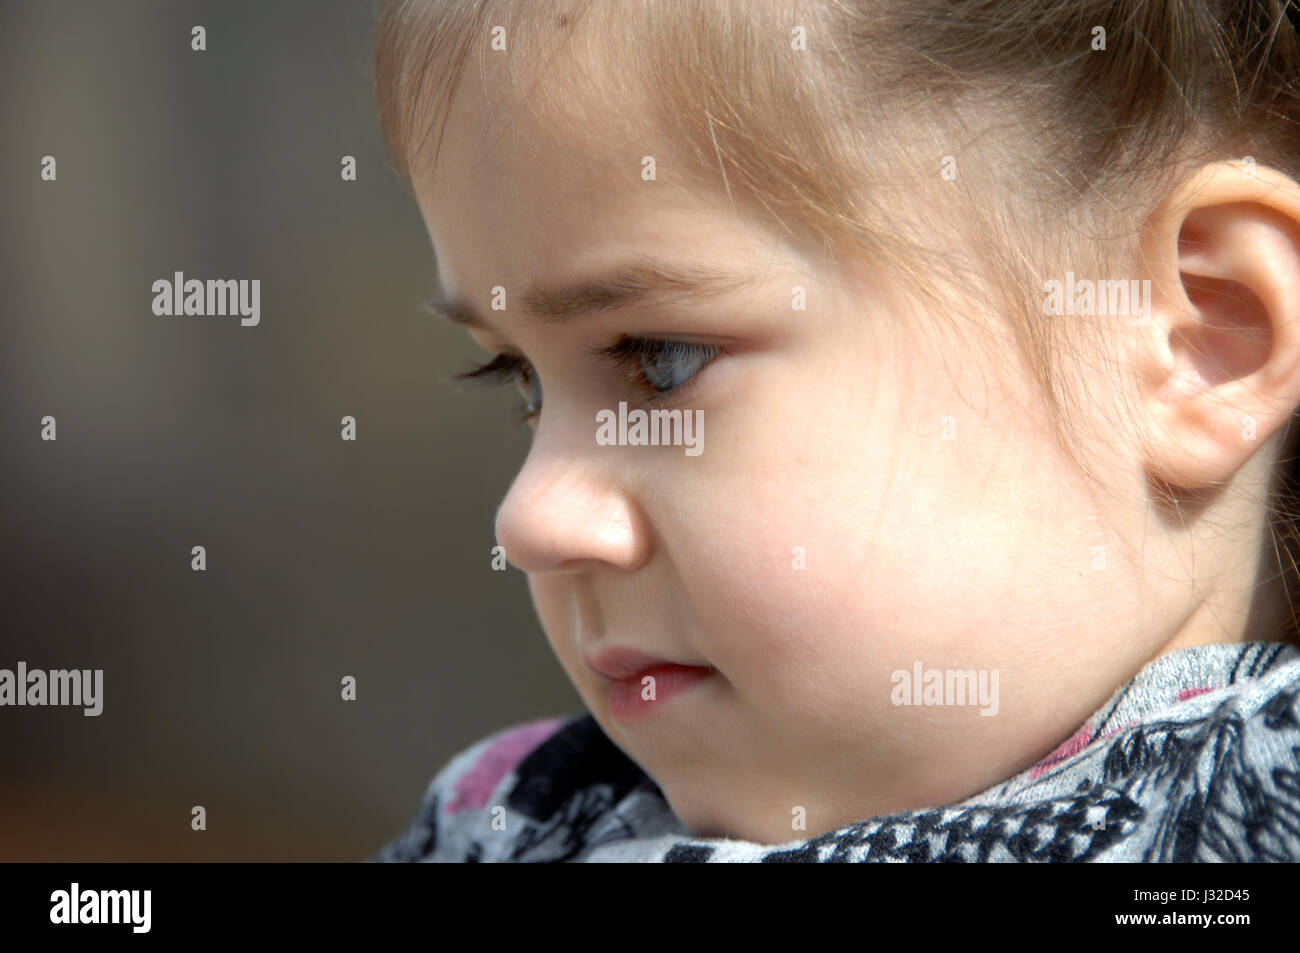 Lost in thought, this little girl is in profile and close up.  She is resting her chin on her chest. - Stock Image